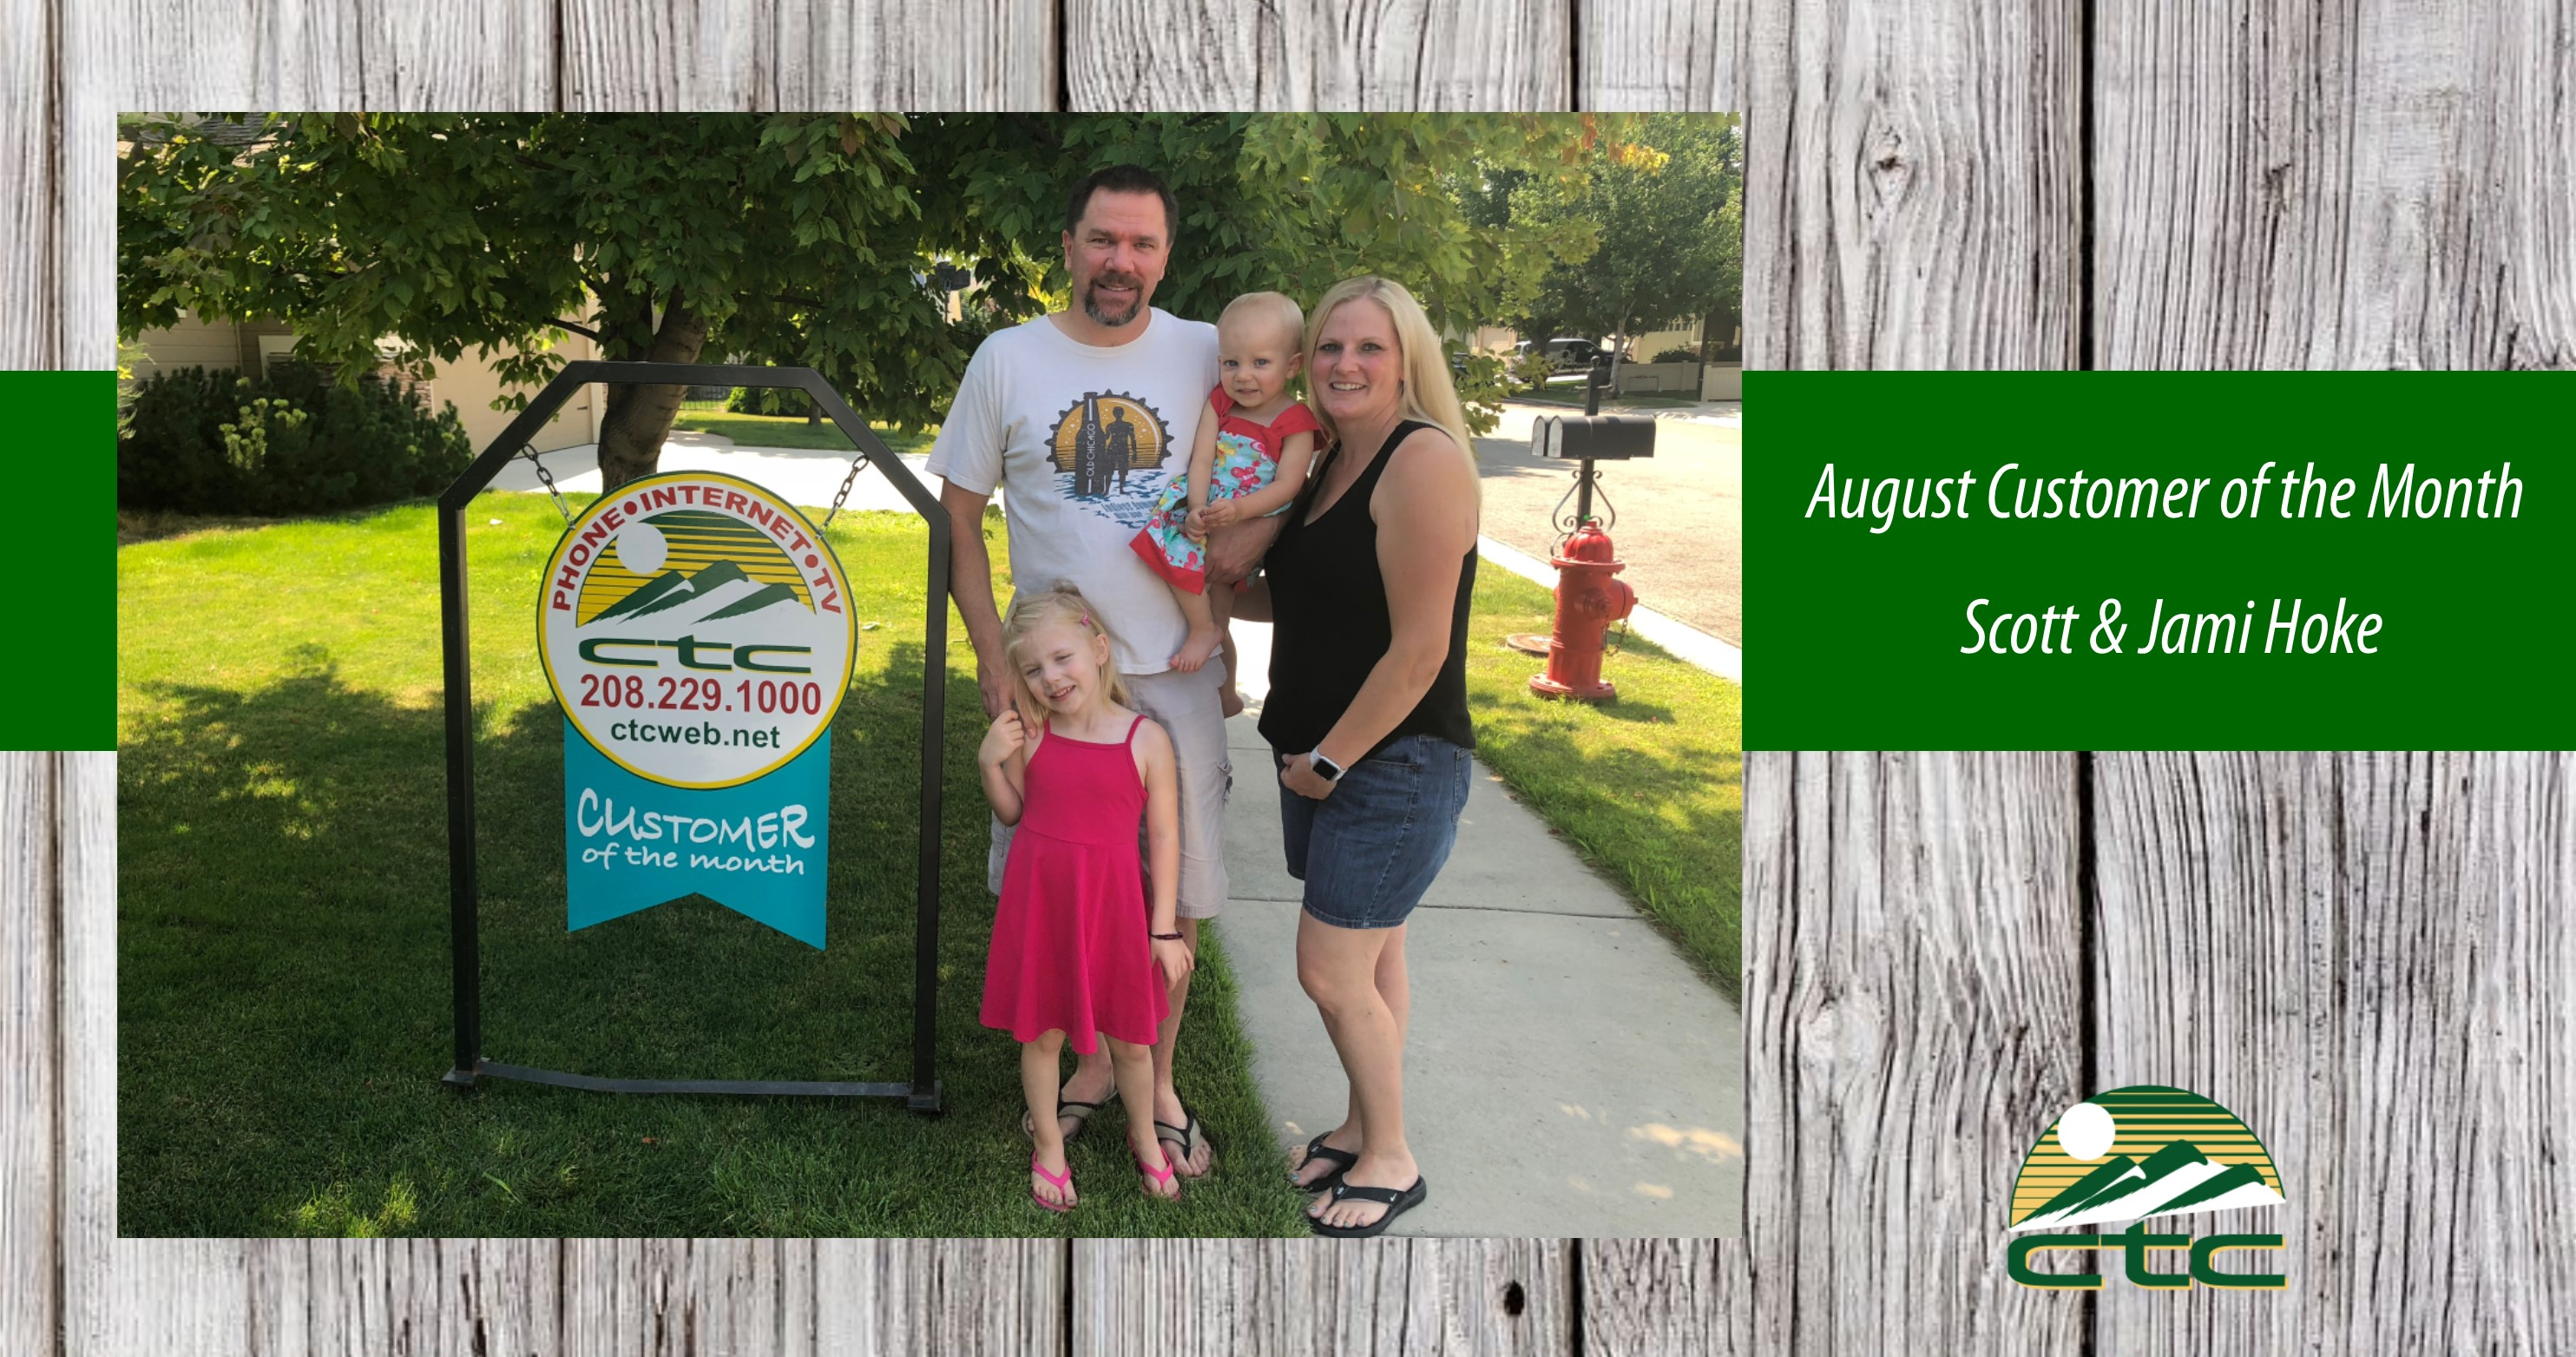 August Customers of the Month